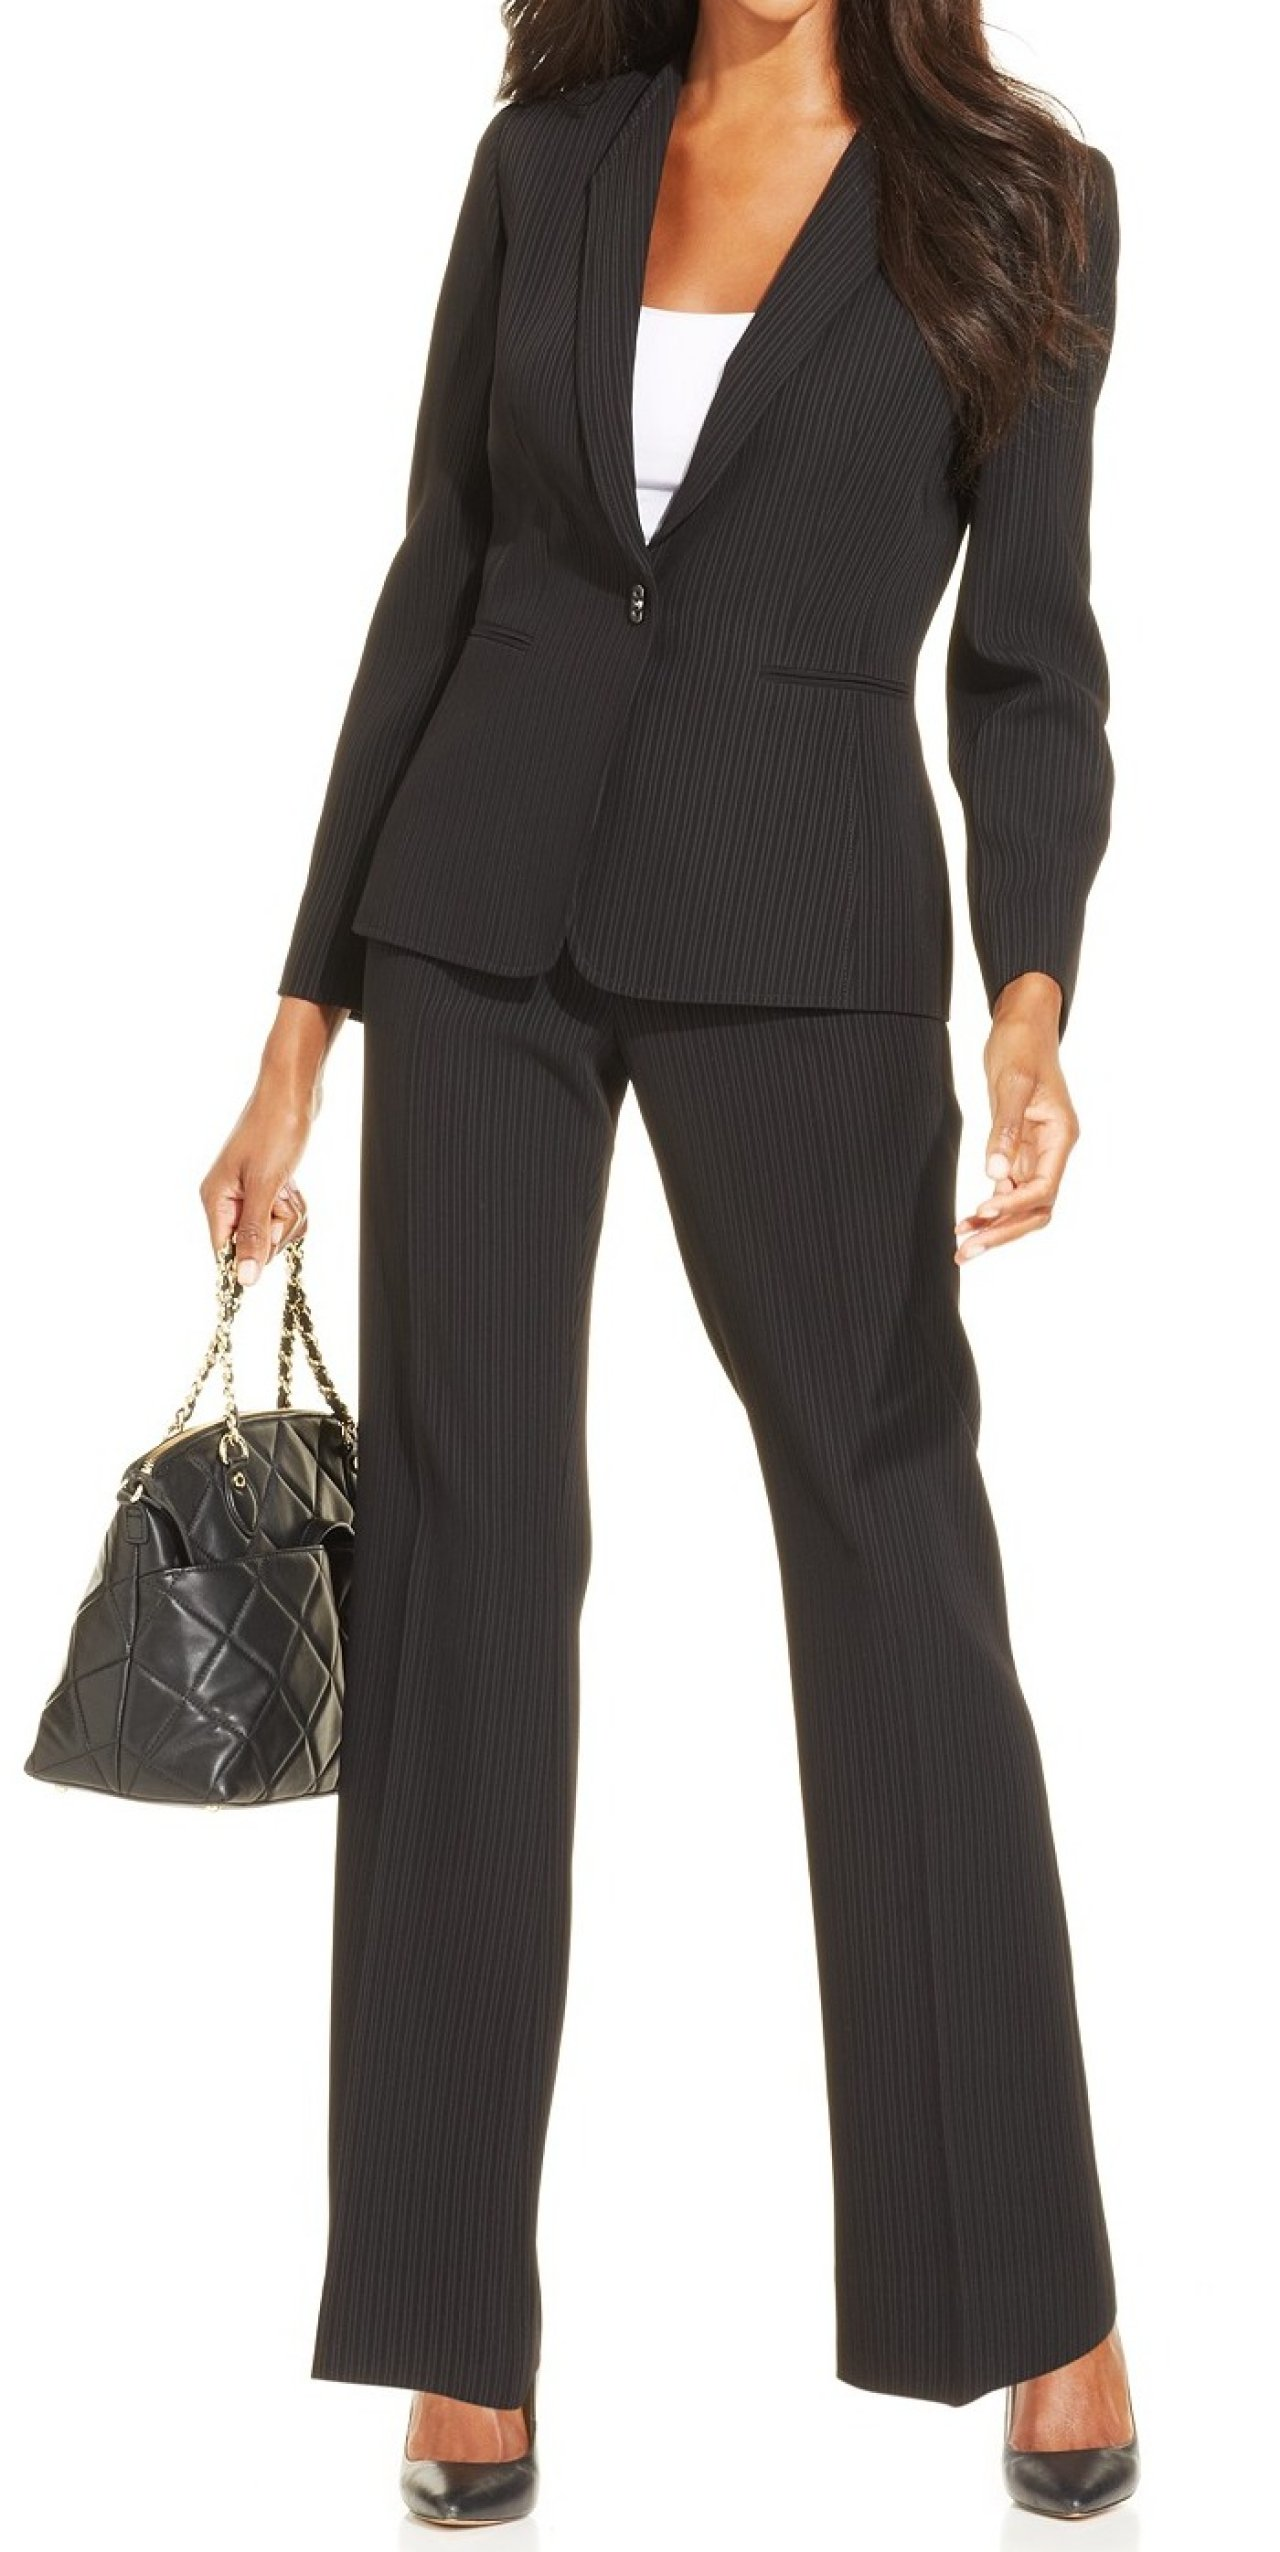 Creative Beautiful Grey Women39s Suit Business Attire  Women39s Business